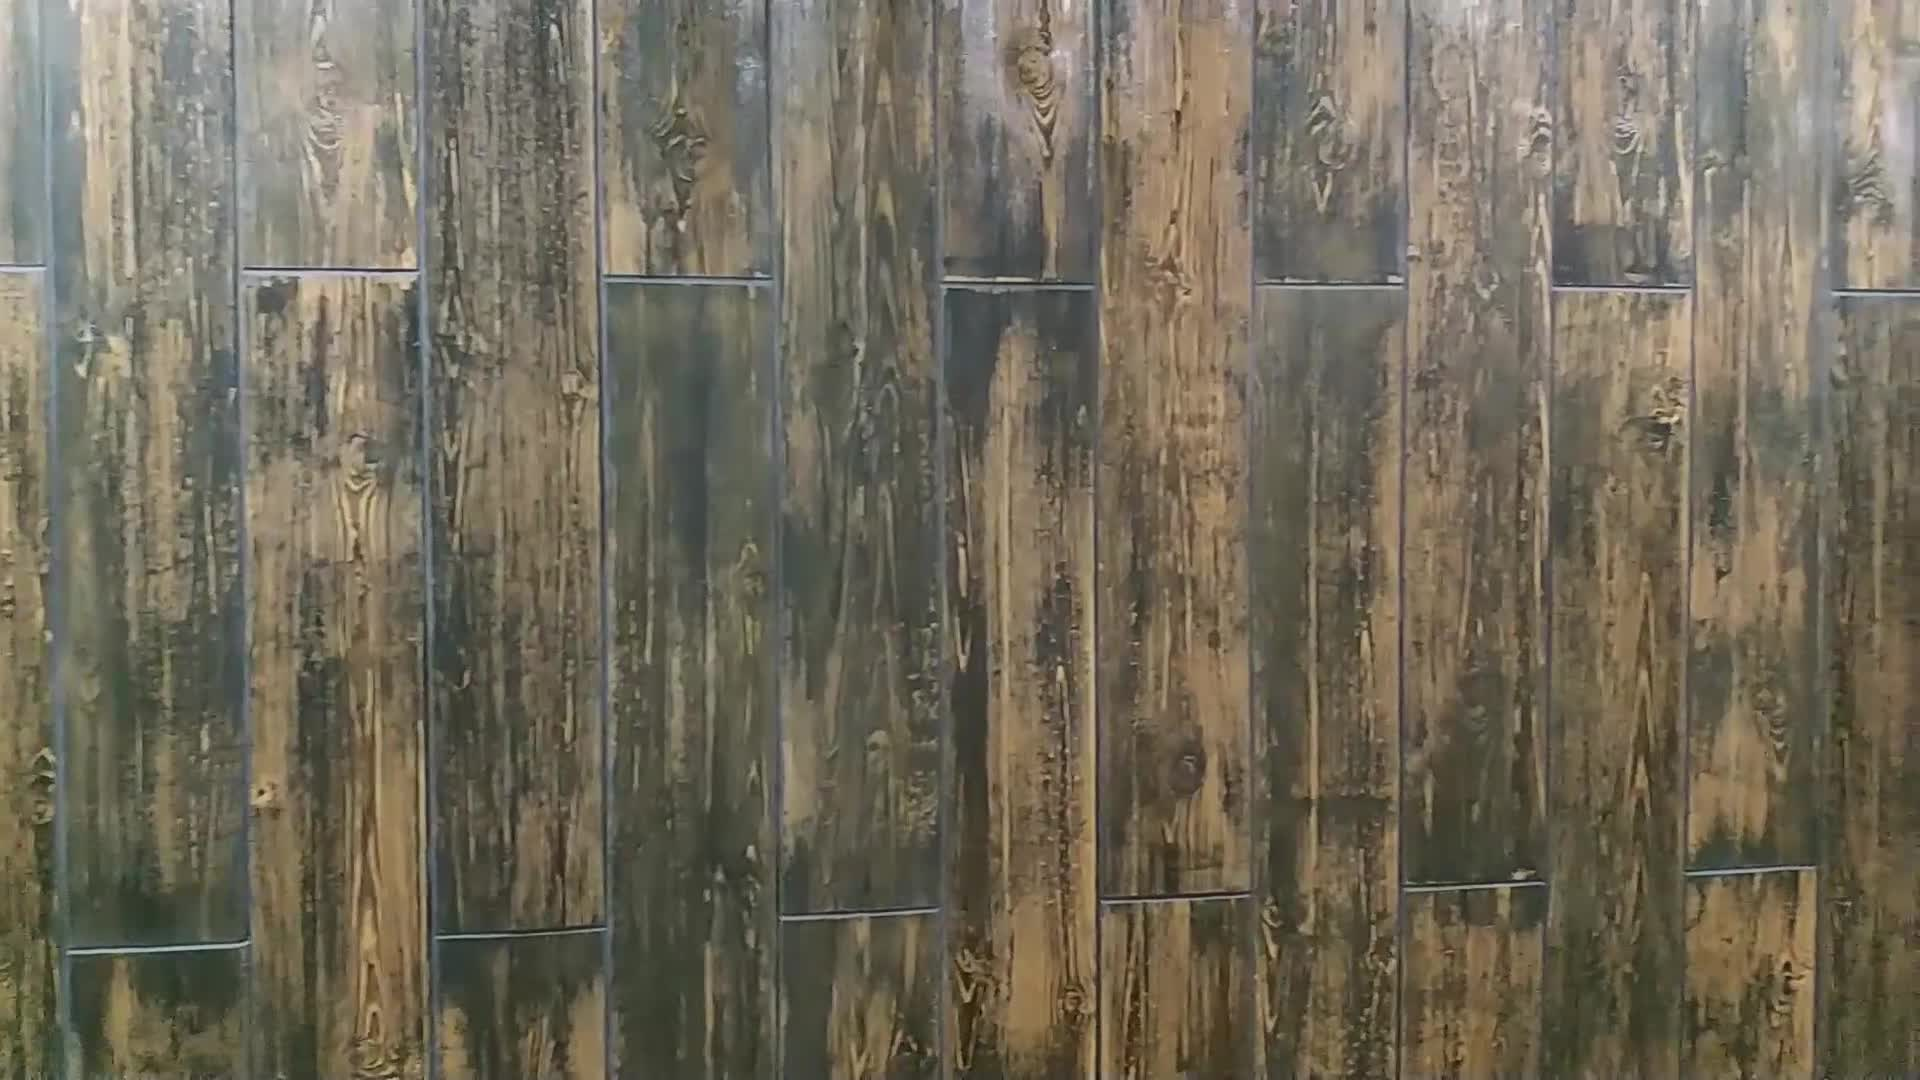 Wood Look Hotel Project Exterior Ceramic Flexible Wall Tile